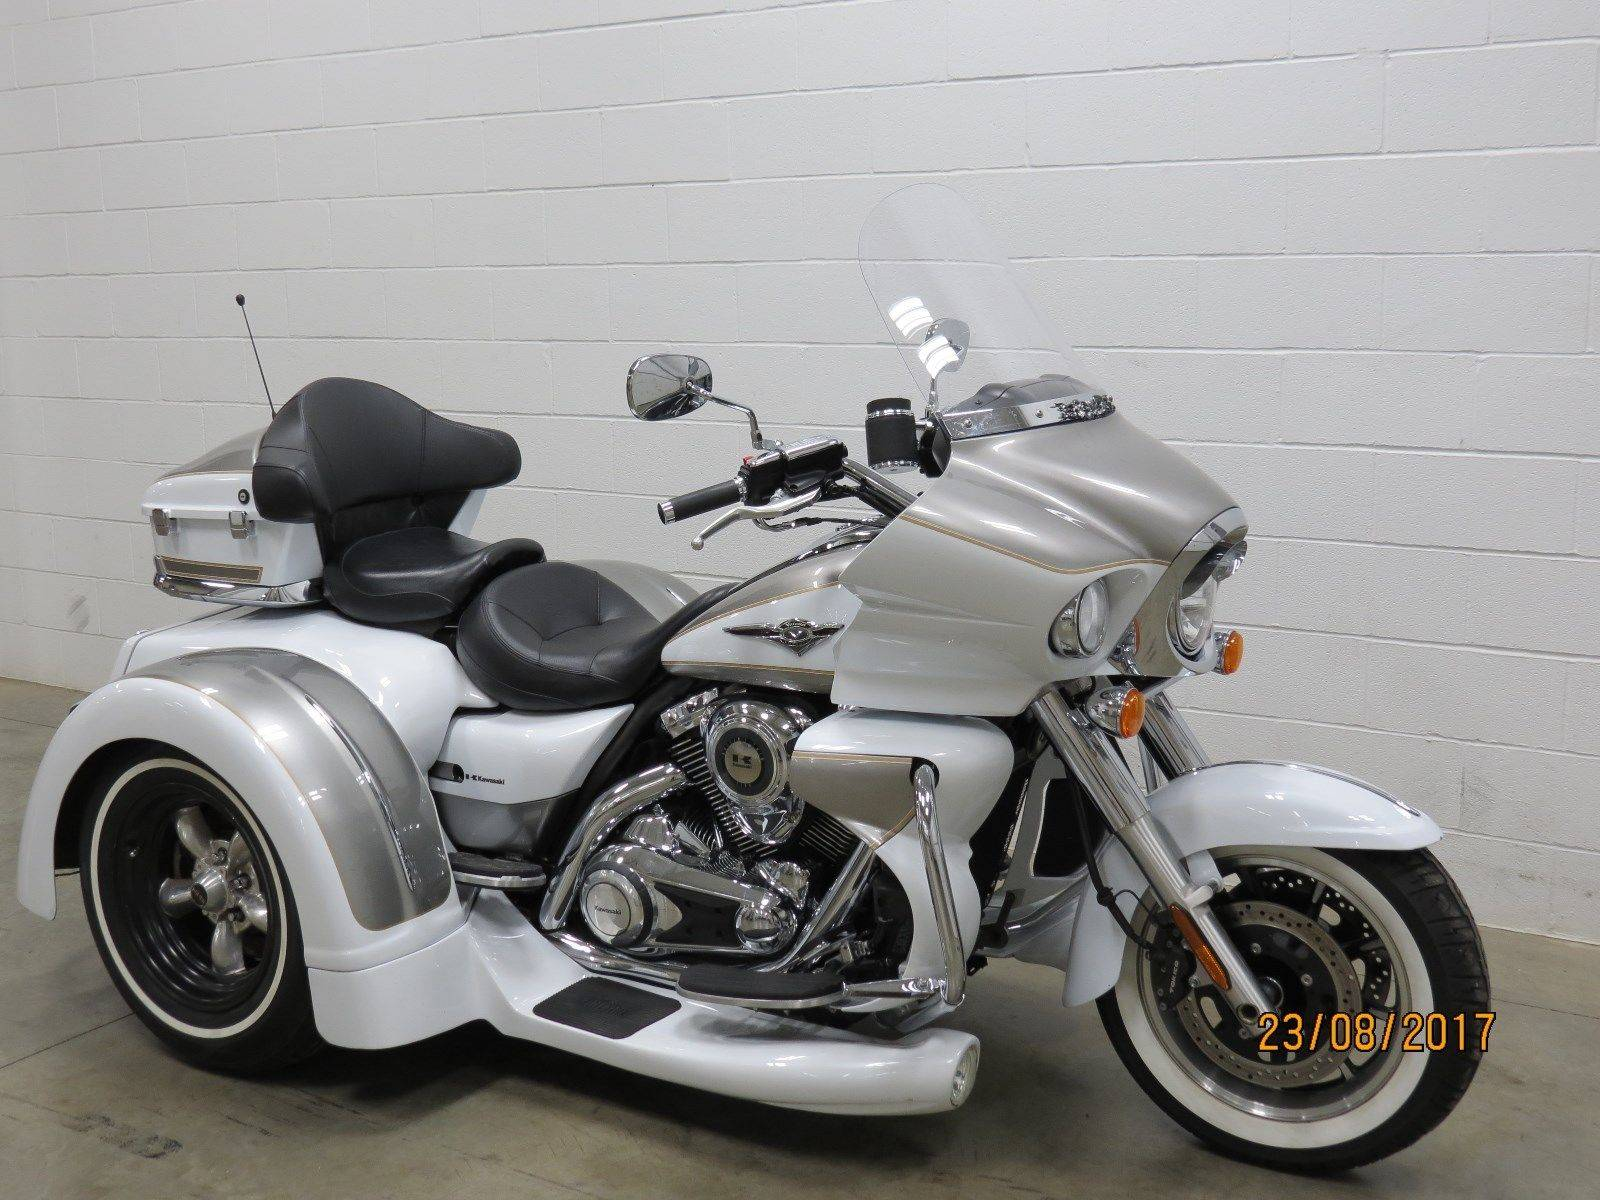 2013 kawasaki vn1700 voyager motor trike for sale lima oh for Used motor trike sale